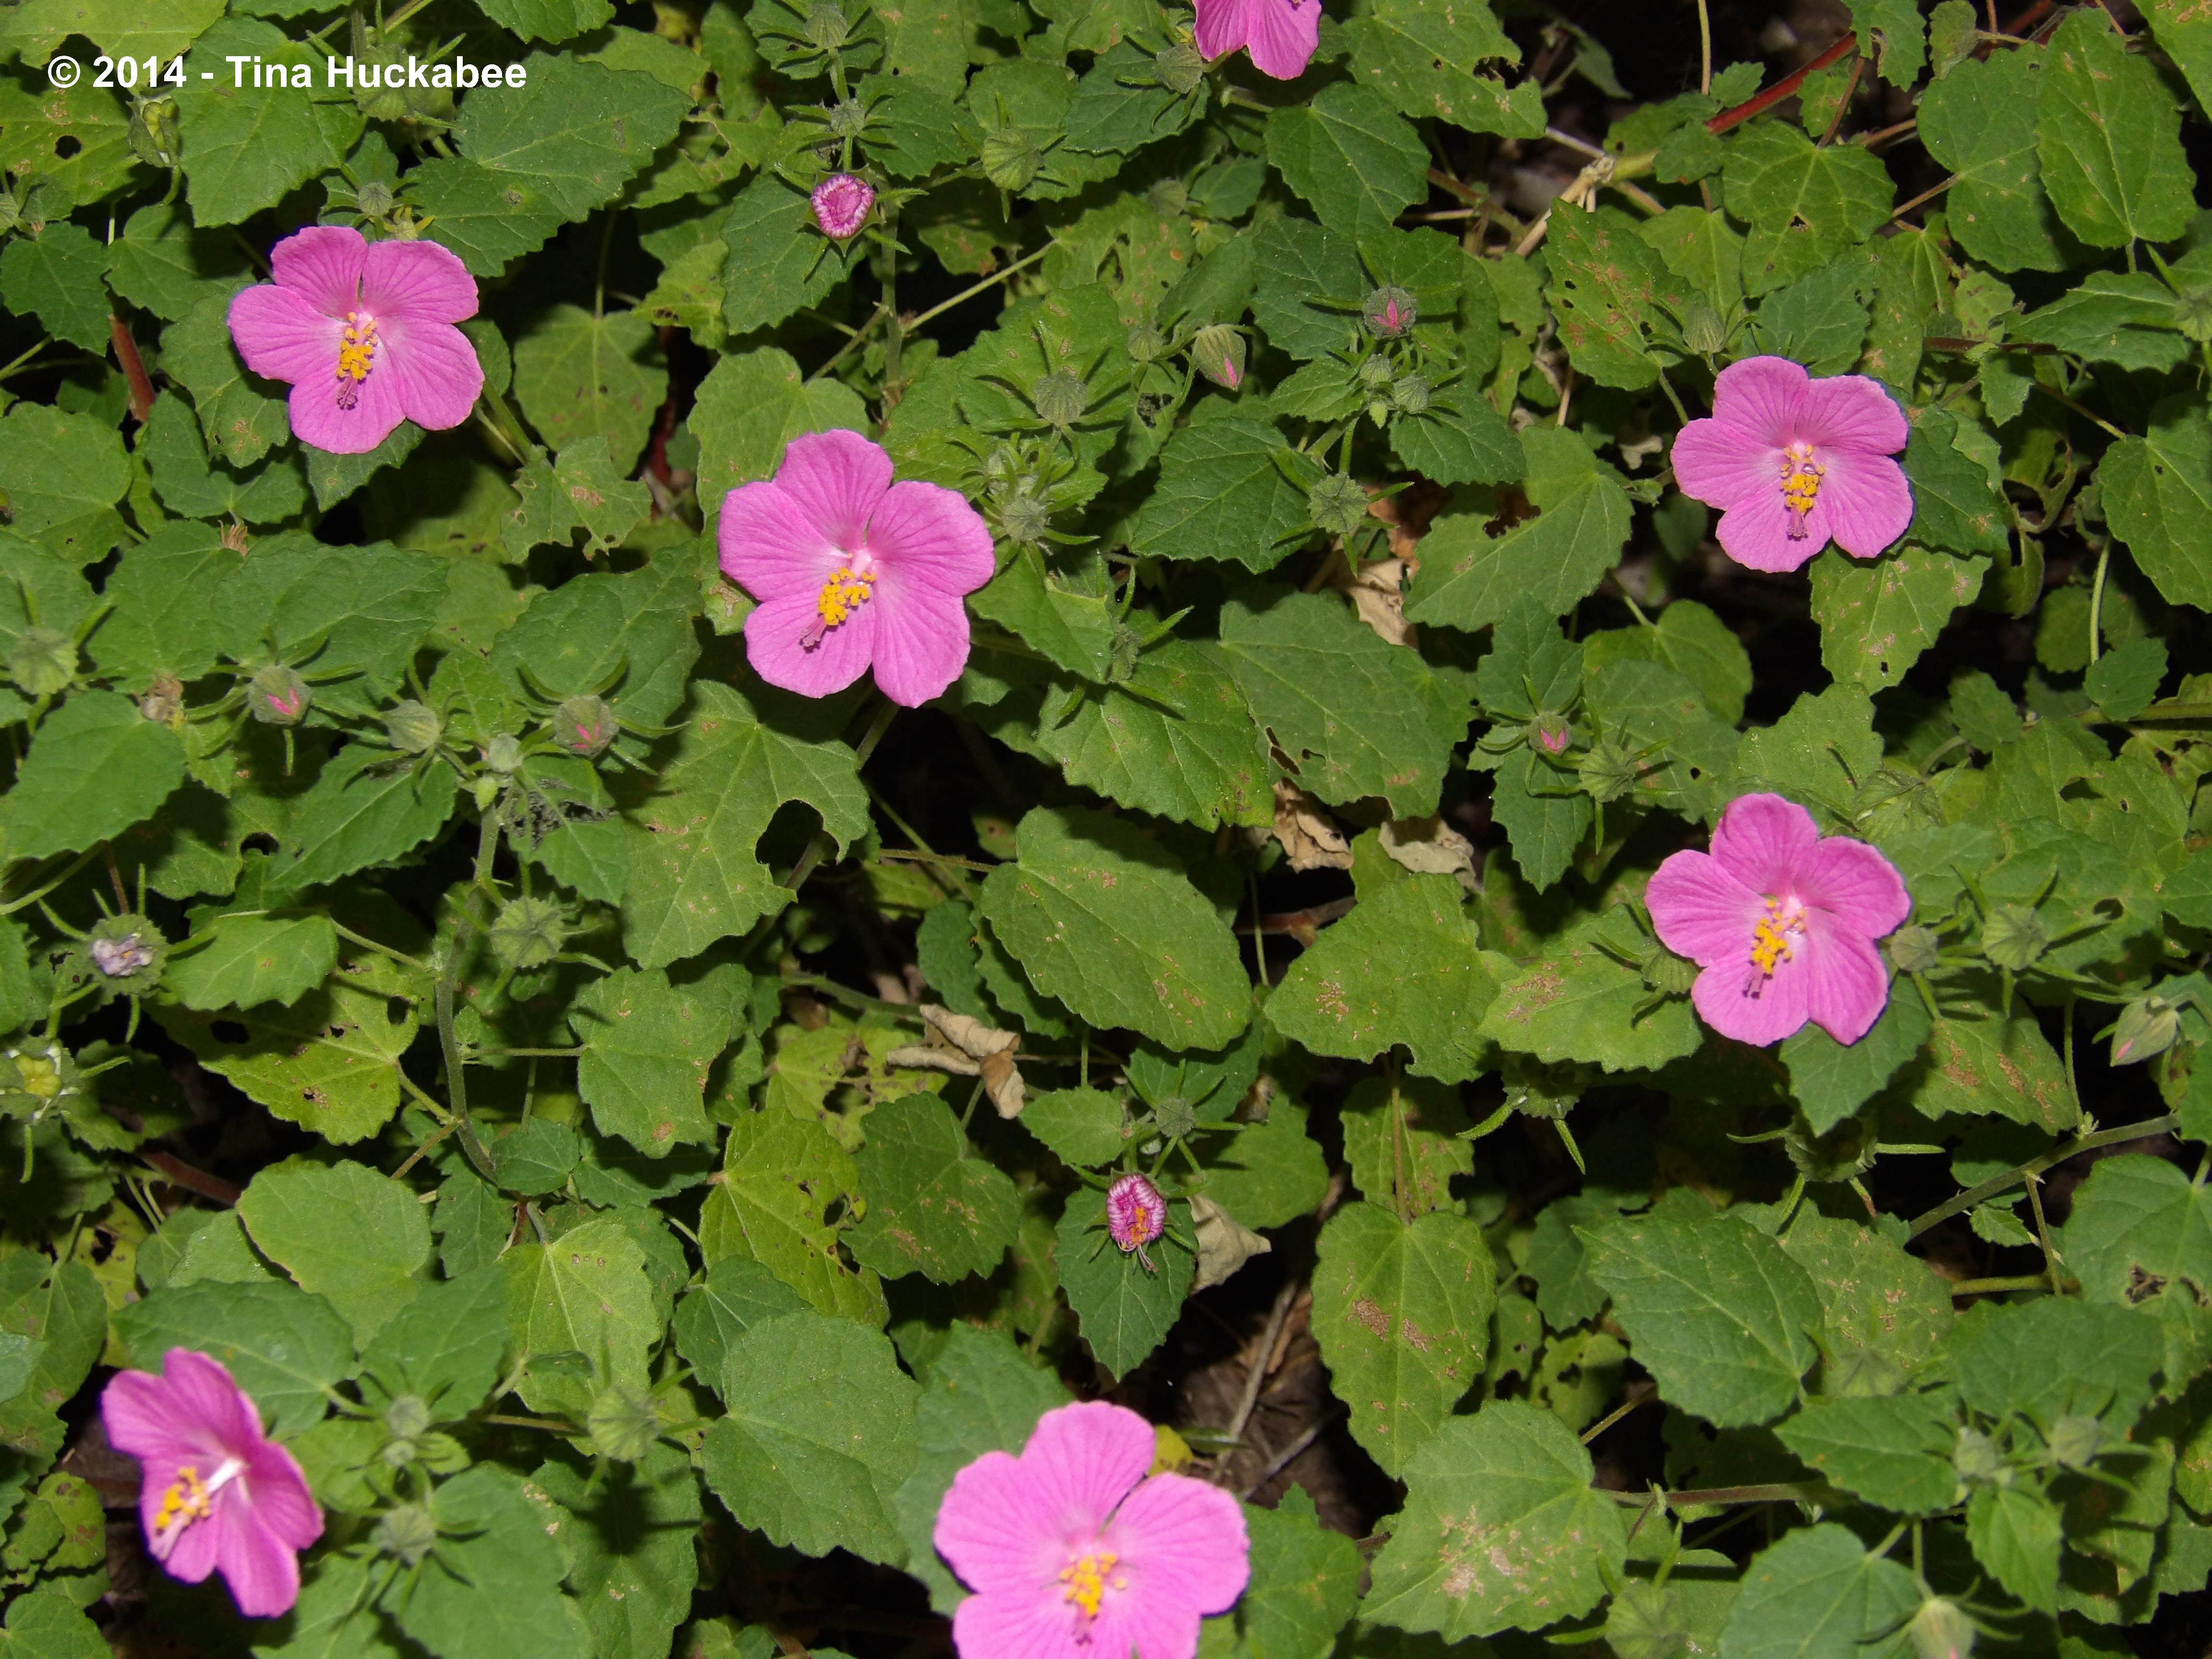 Texas native plant weekrock rose pavonia lasiopetala my gardener this small evergreen perennial blooms late spring throughout summer and into fall and is a texas tough plant rock rose flourishes in a variety of light izmirmasajfo